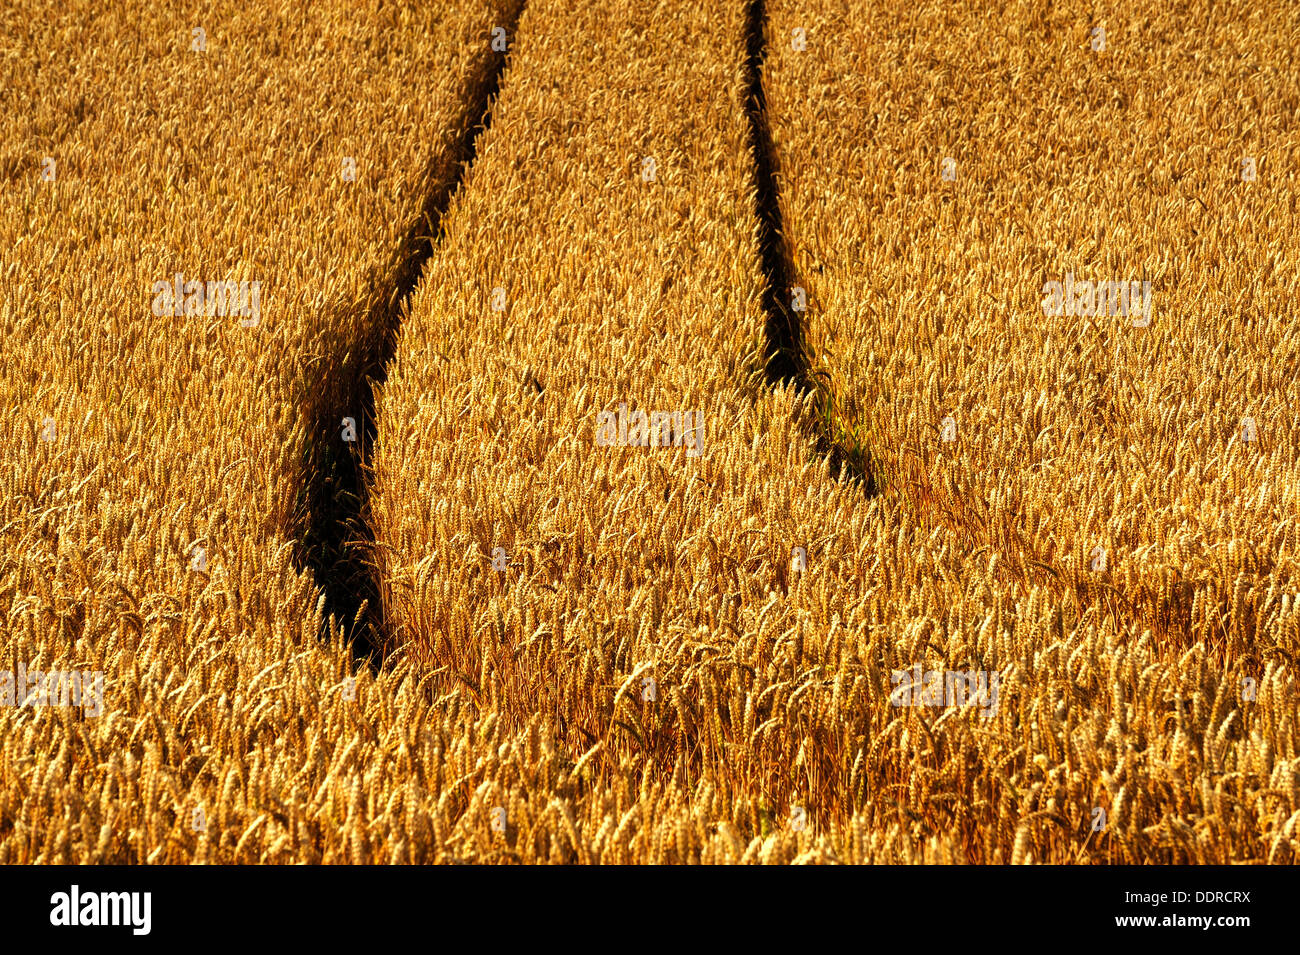 WHEATFIELD WHEAT FIELD WITH TRACTOR TRACKS - Stock Image